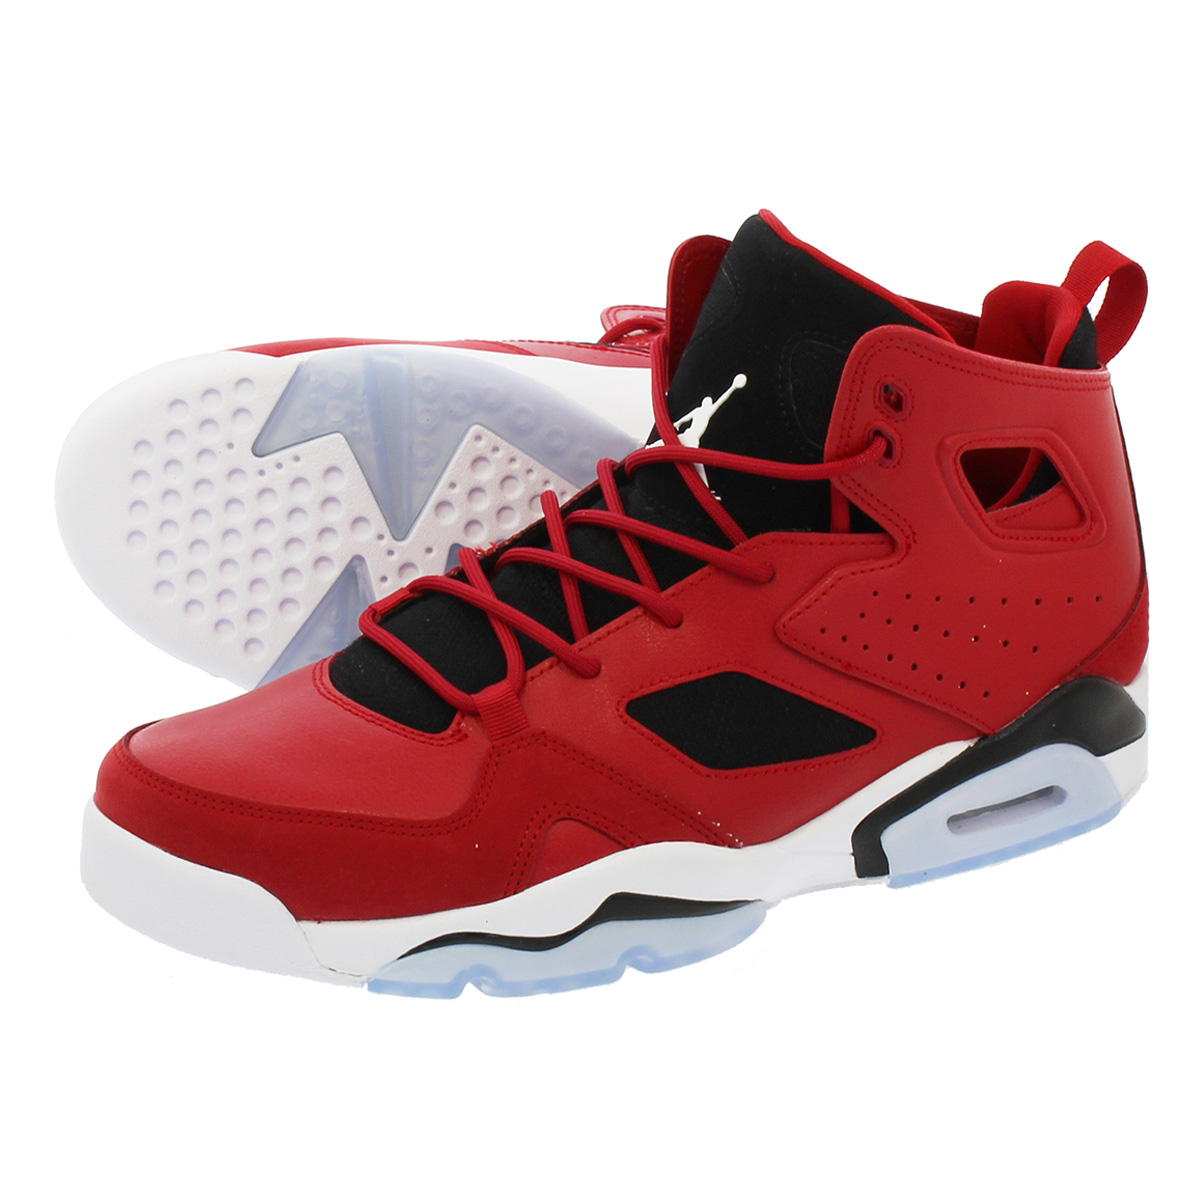 low priced b9831 03a78 NIKE JORDAN FLIGHT CLUB 91 나이키 조던 플라이트 클럽 91 GYM RED BLACK WHITE